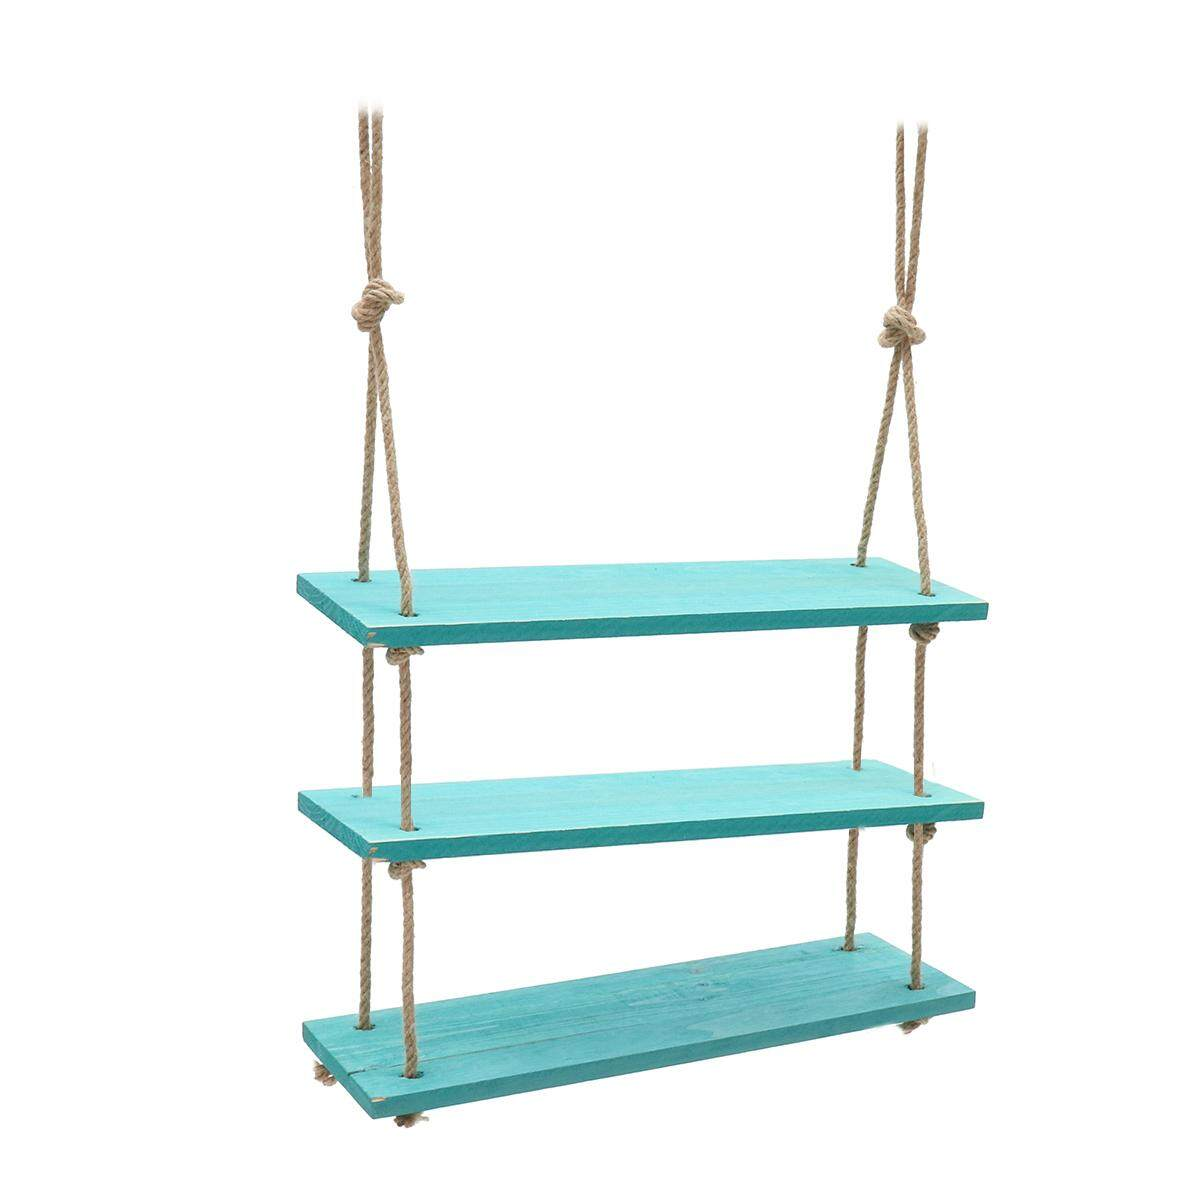 Solid Wood Wall Shelf Storage Floating Wall Shelf Rustic Vintage Rope Shelf Blue 3 Tiers - intl